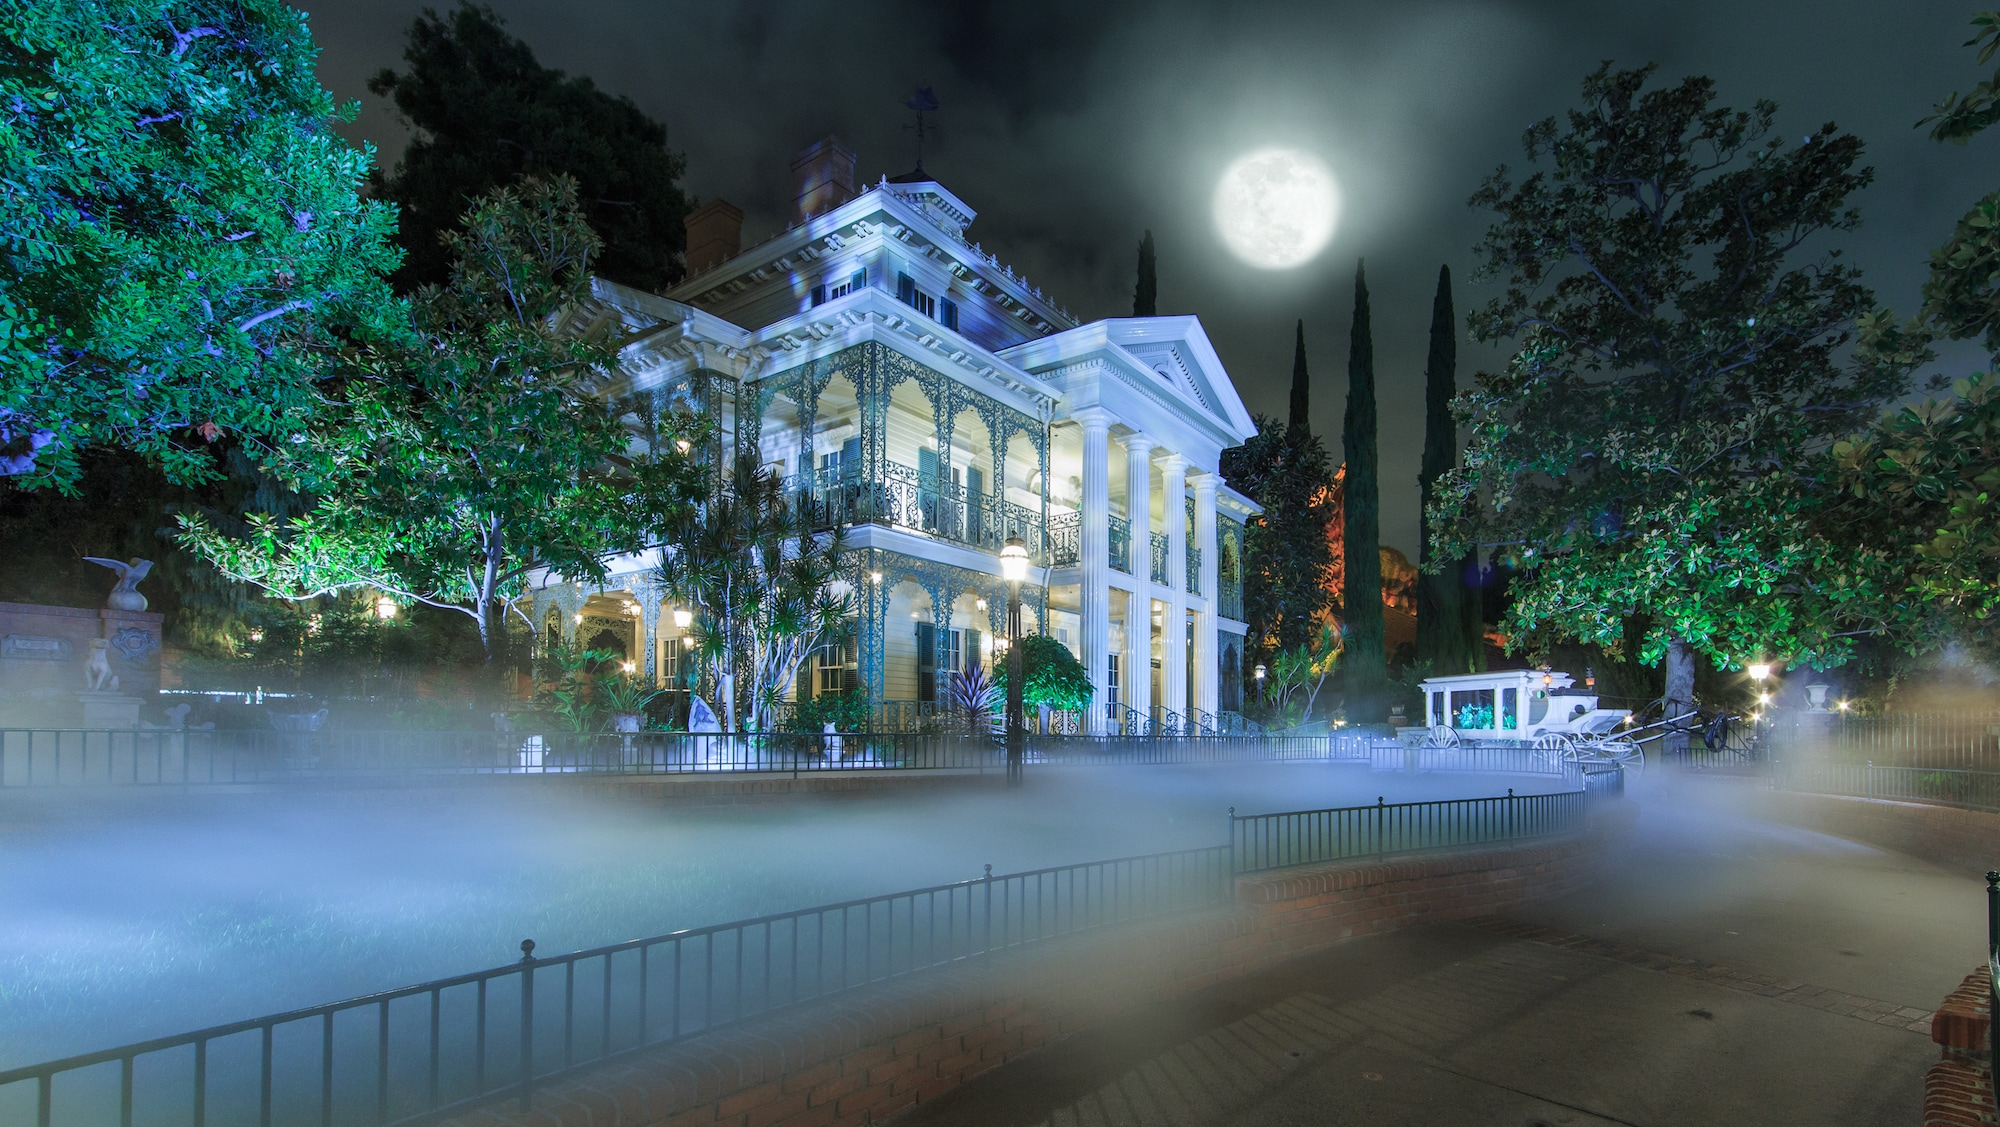 Image of the Haunted Mansion exterior at night.